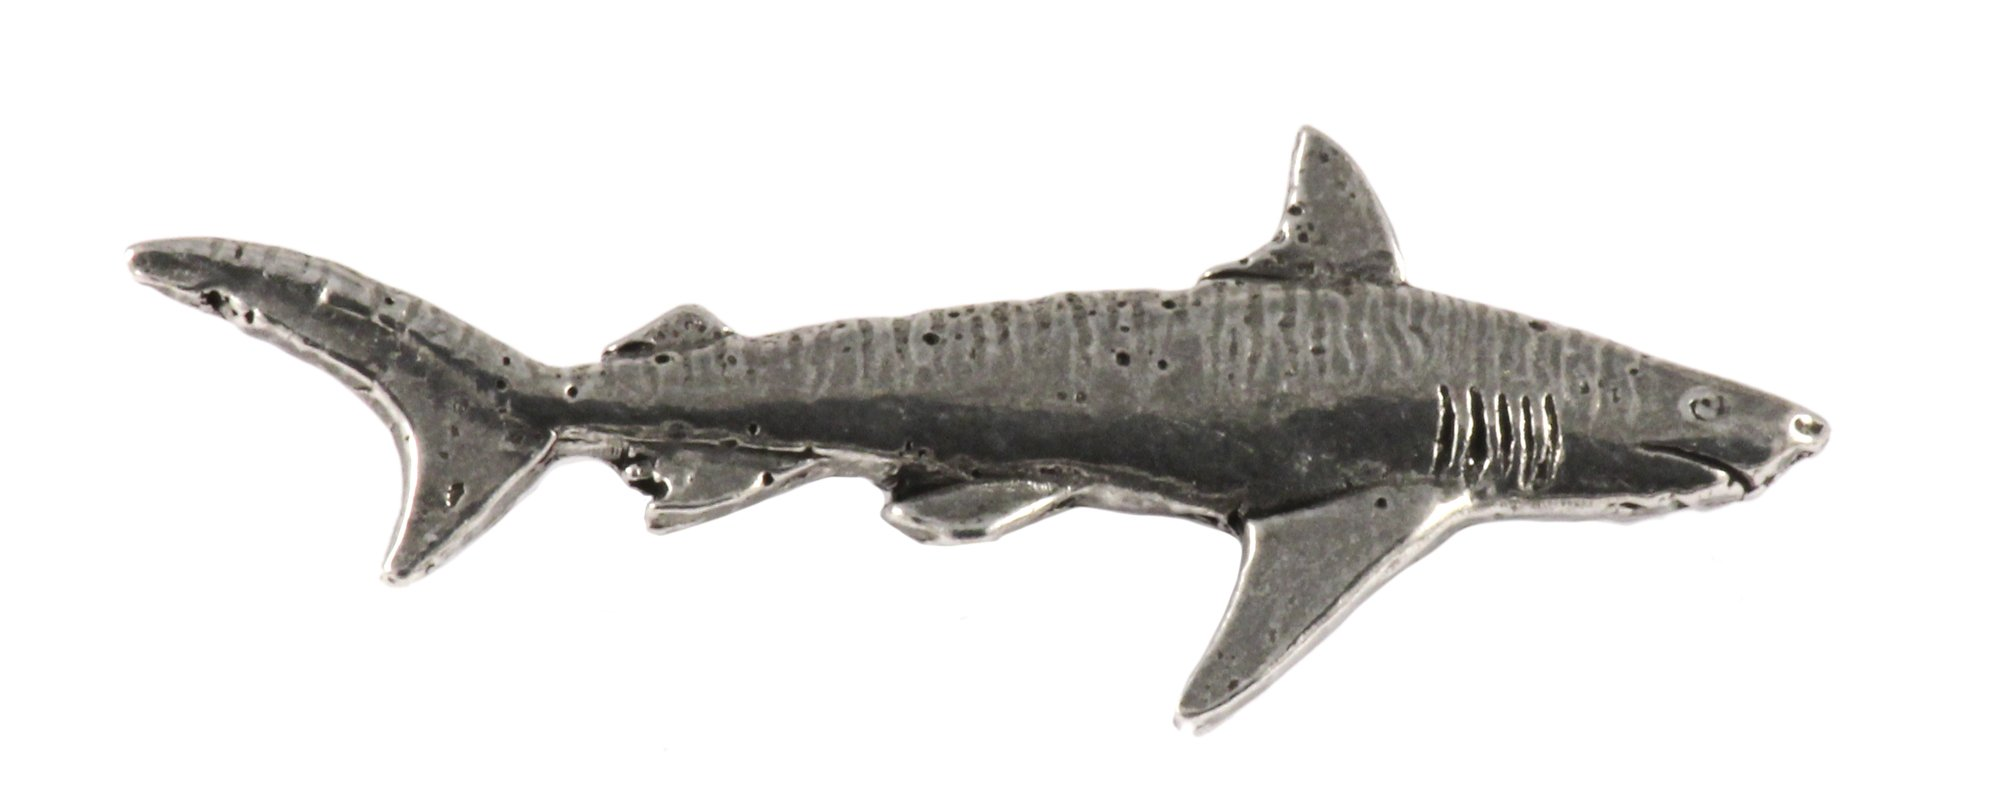 Creative Pewter Designs, Pewter Tiger Shark, Handcrafted Saltwater Fish Lapel Pin Brooch, Antique Finish, S122